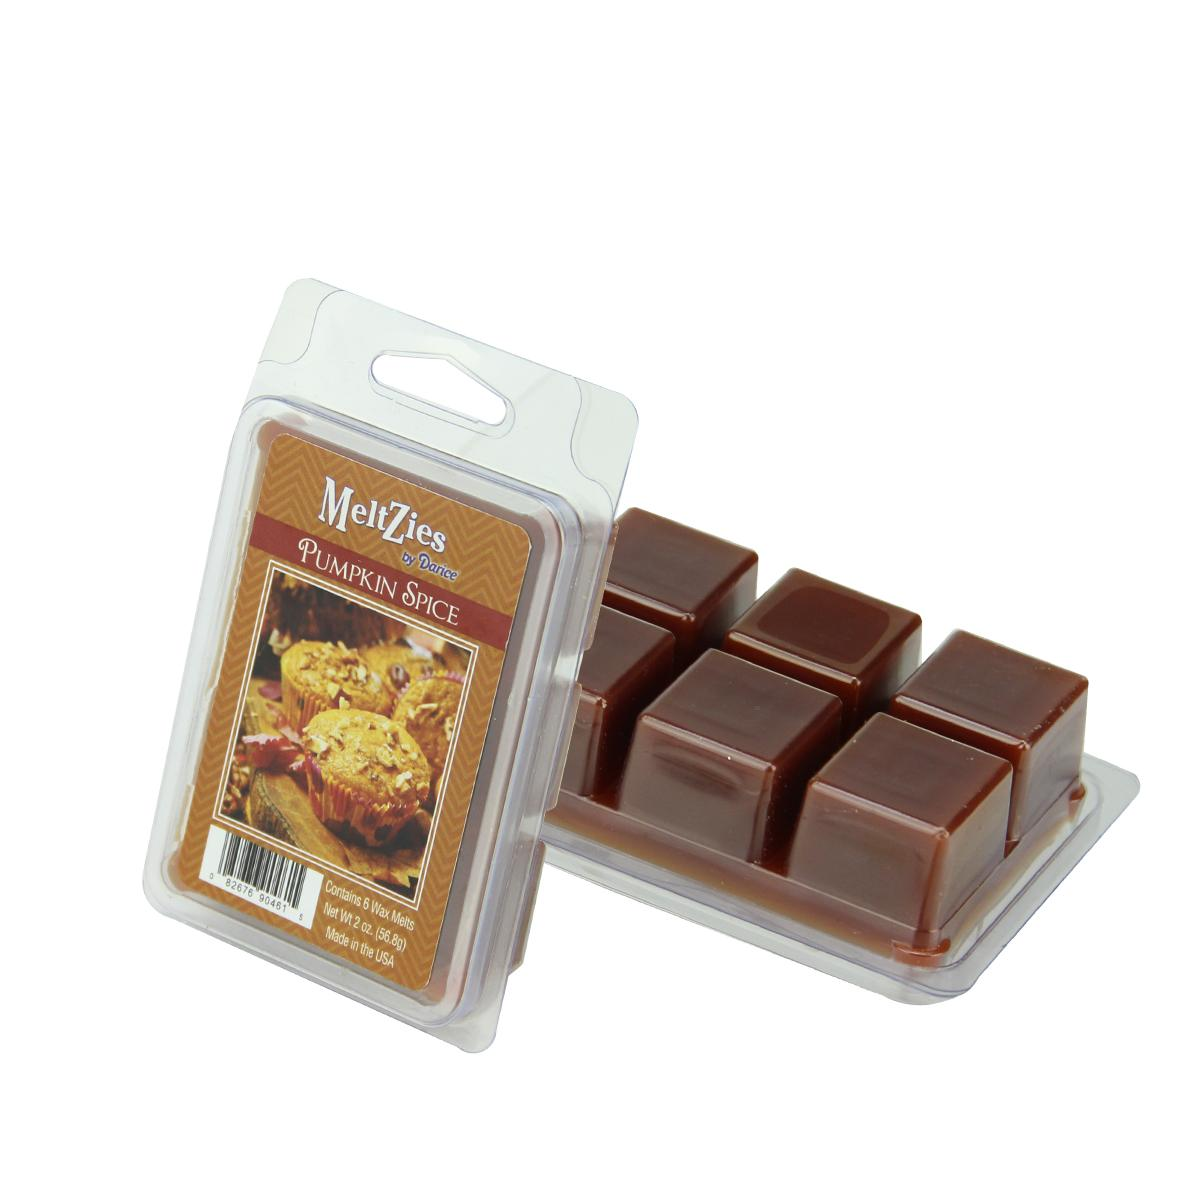 Meltzies Pumpkin Spice Scented Wax Cube Melts - 2 oz.